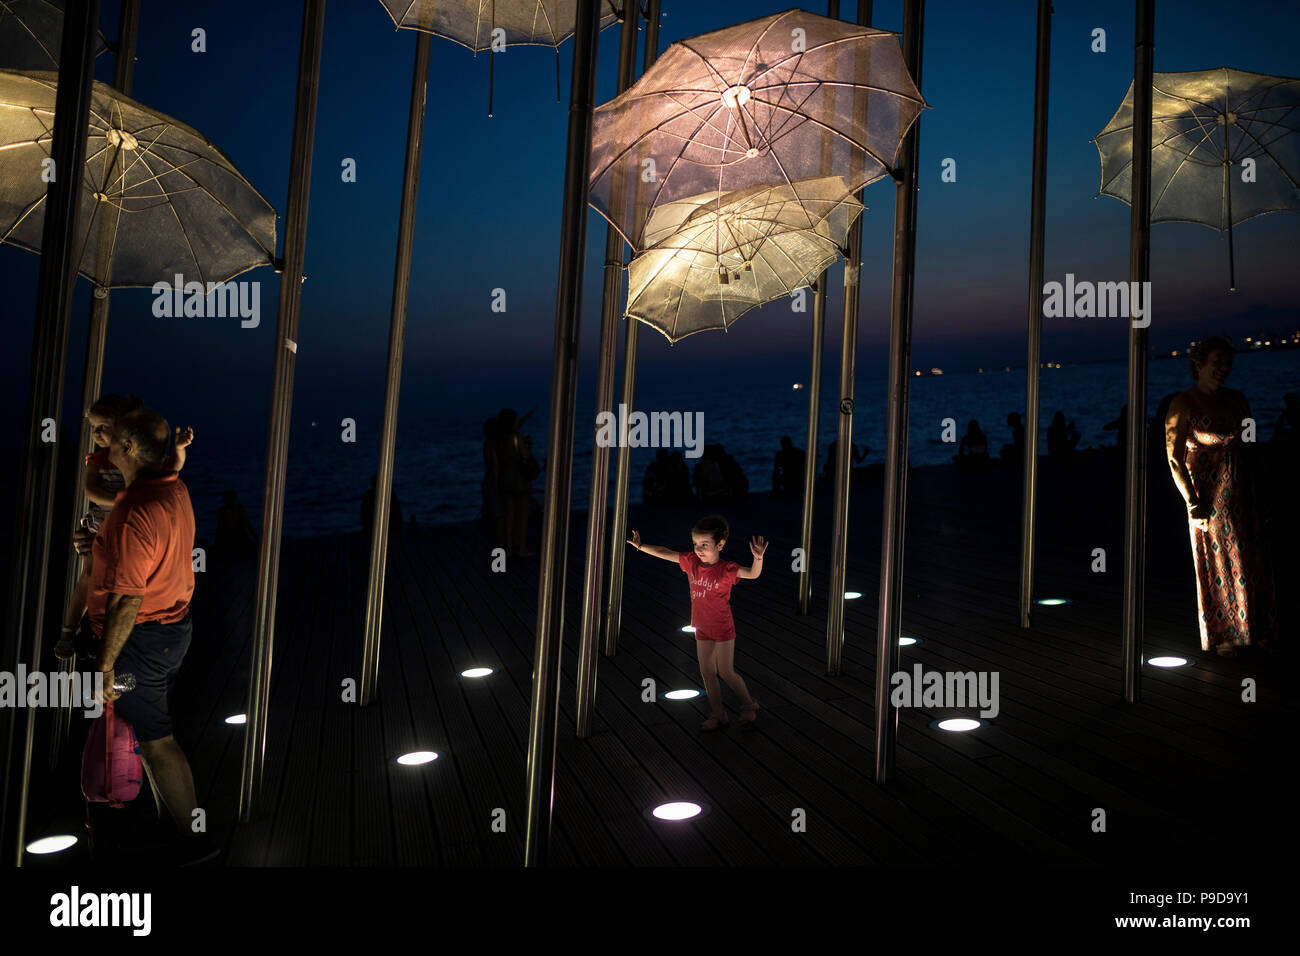 People photographed in Zongolopoulos umbrellas, Thessaloniki, Greece on July 16, 2018. - Stock Image